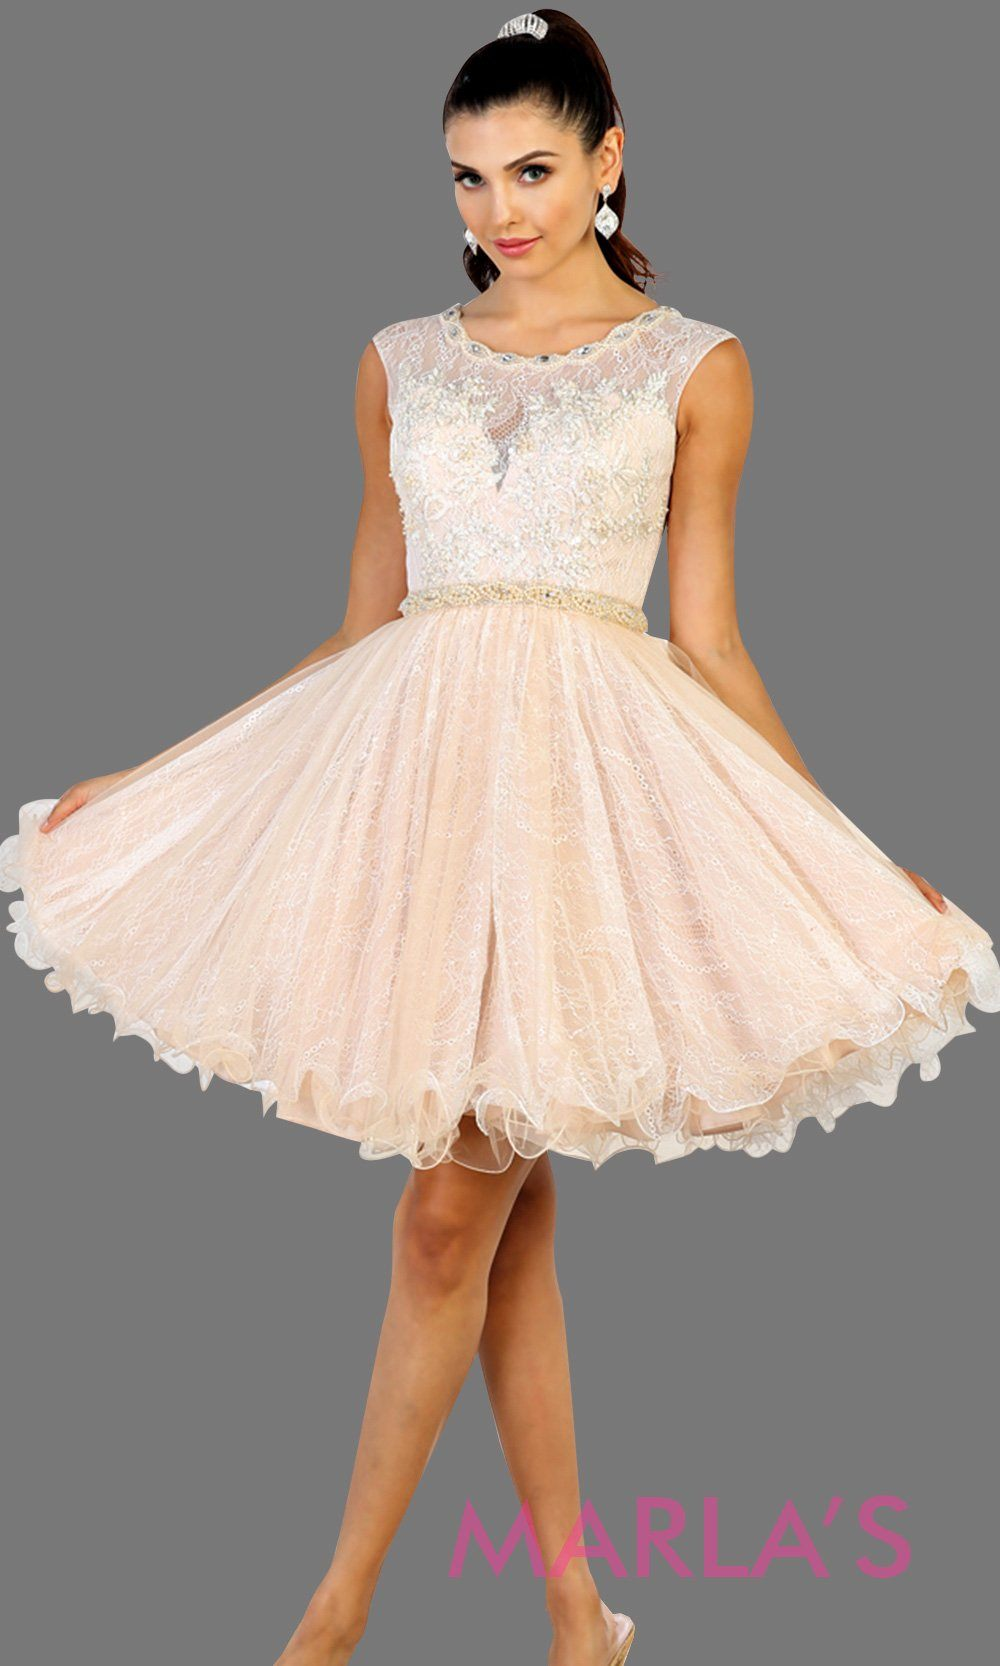 Short high neck puffy champagne dress with lace top. Perfect for grade 8 grad, graduation, light gold confirmation, quinceanera damas, sweet 16, sweet 15, 18th birthday, semi formal, ballerina dress. Available in plus sizes.